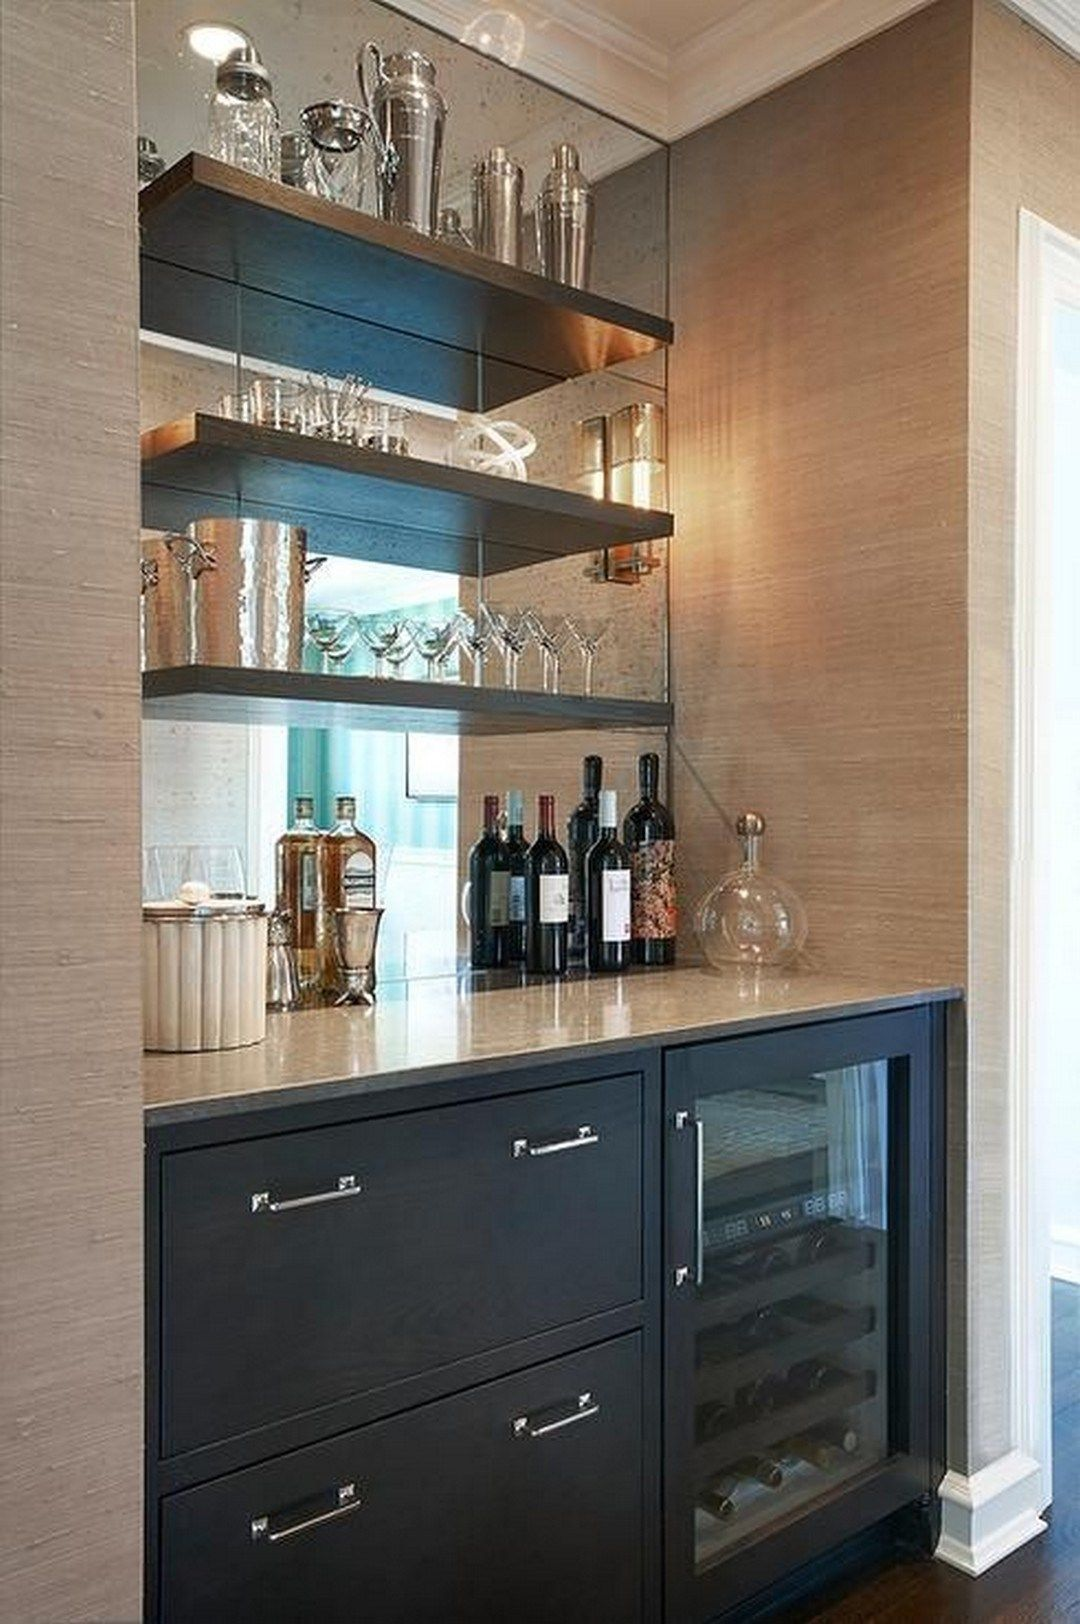 32 Dining Room Storage With Floating Shelves Rani S Living